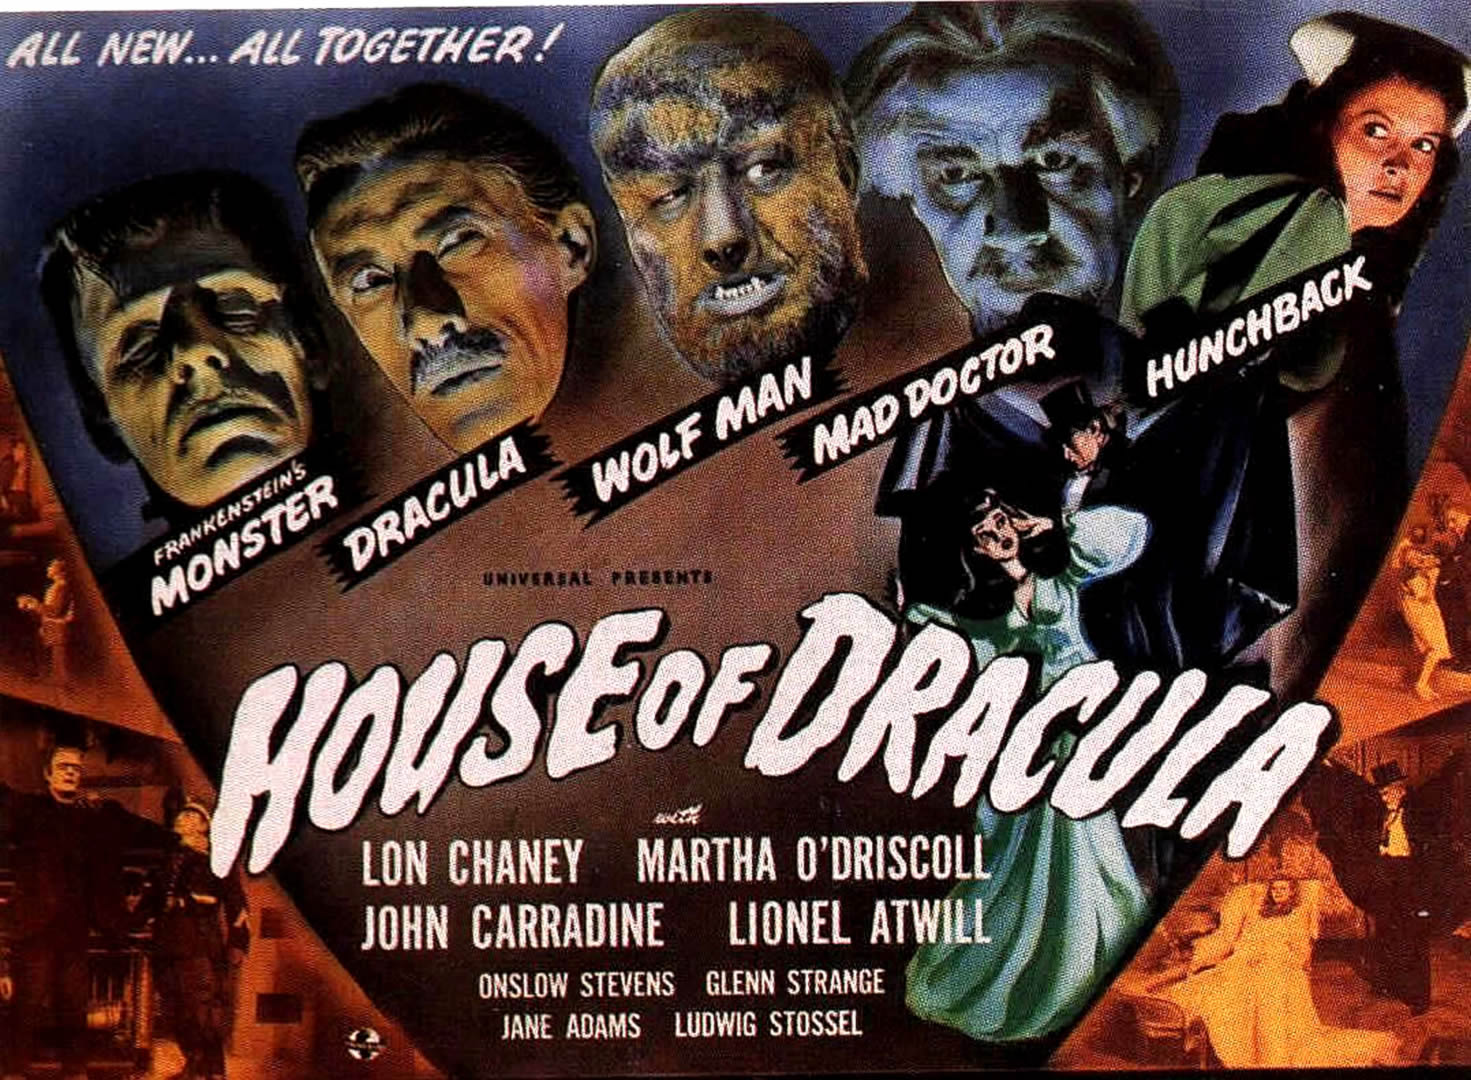 HOUSE OF DRACULA   Vintage 1940s Movie Posters Wallpaper Image 1471x1080